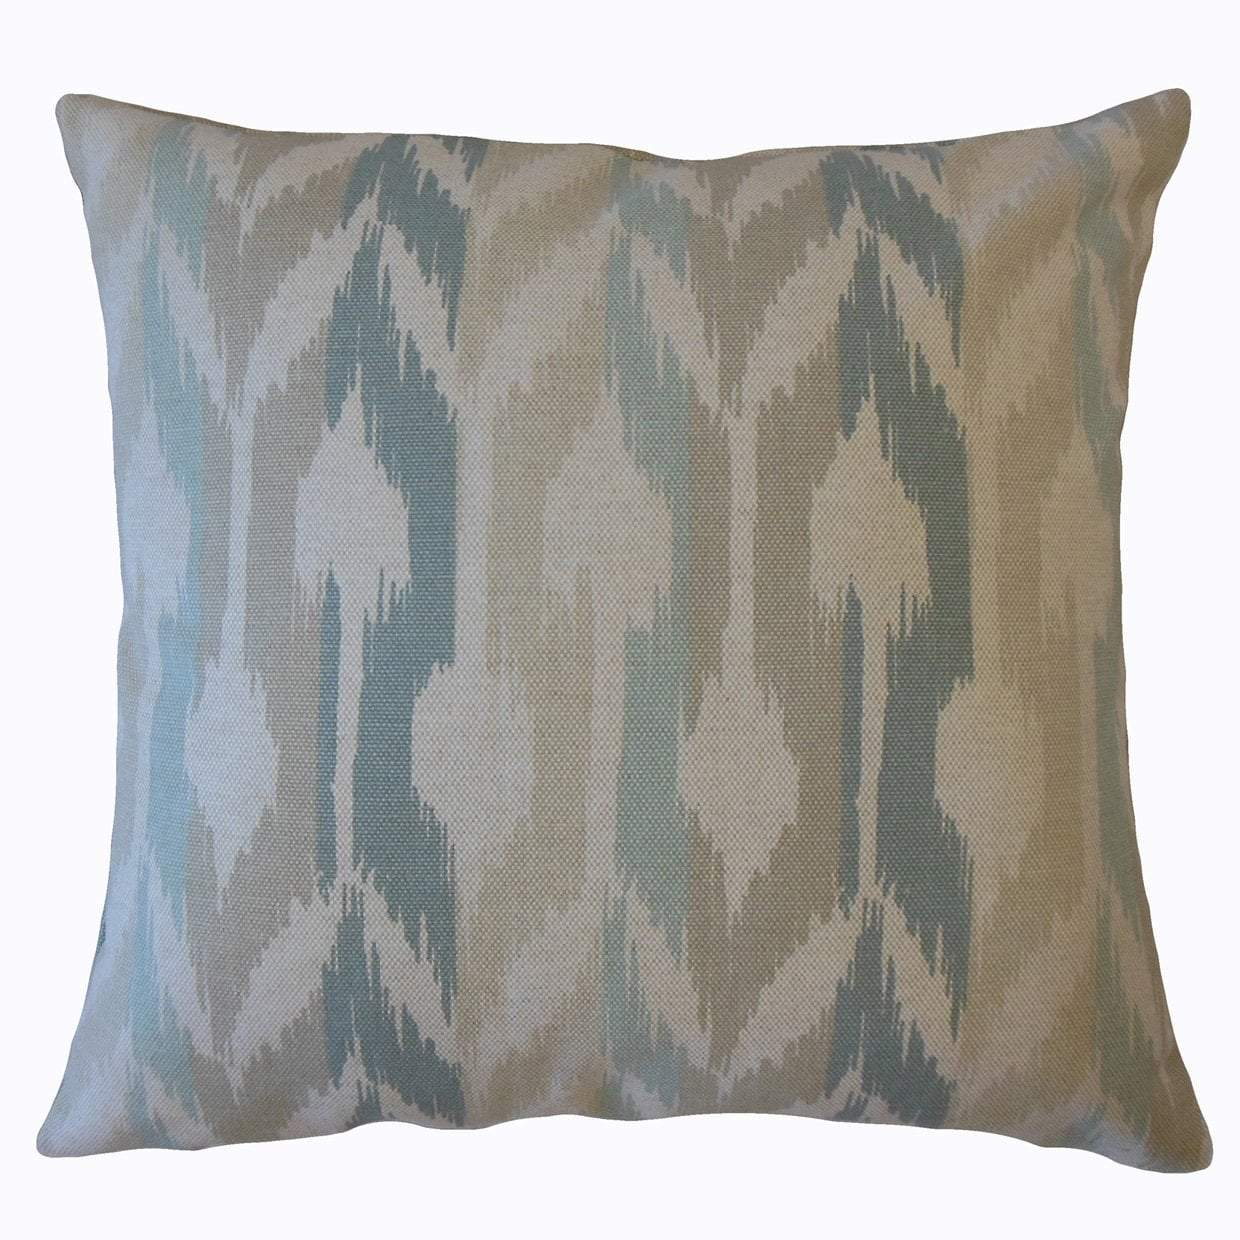 Blue Cotton Ikat Boho Throw Pillow Cover